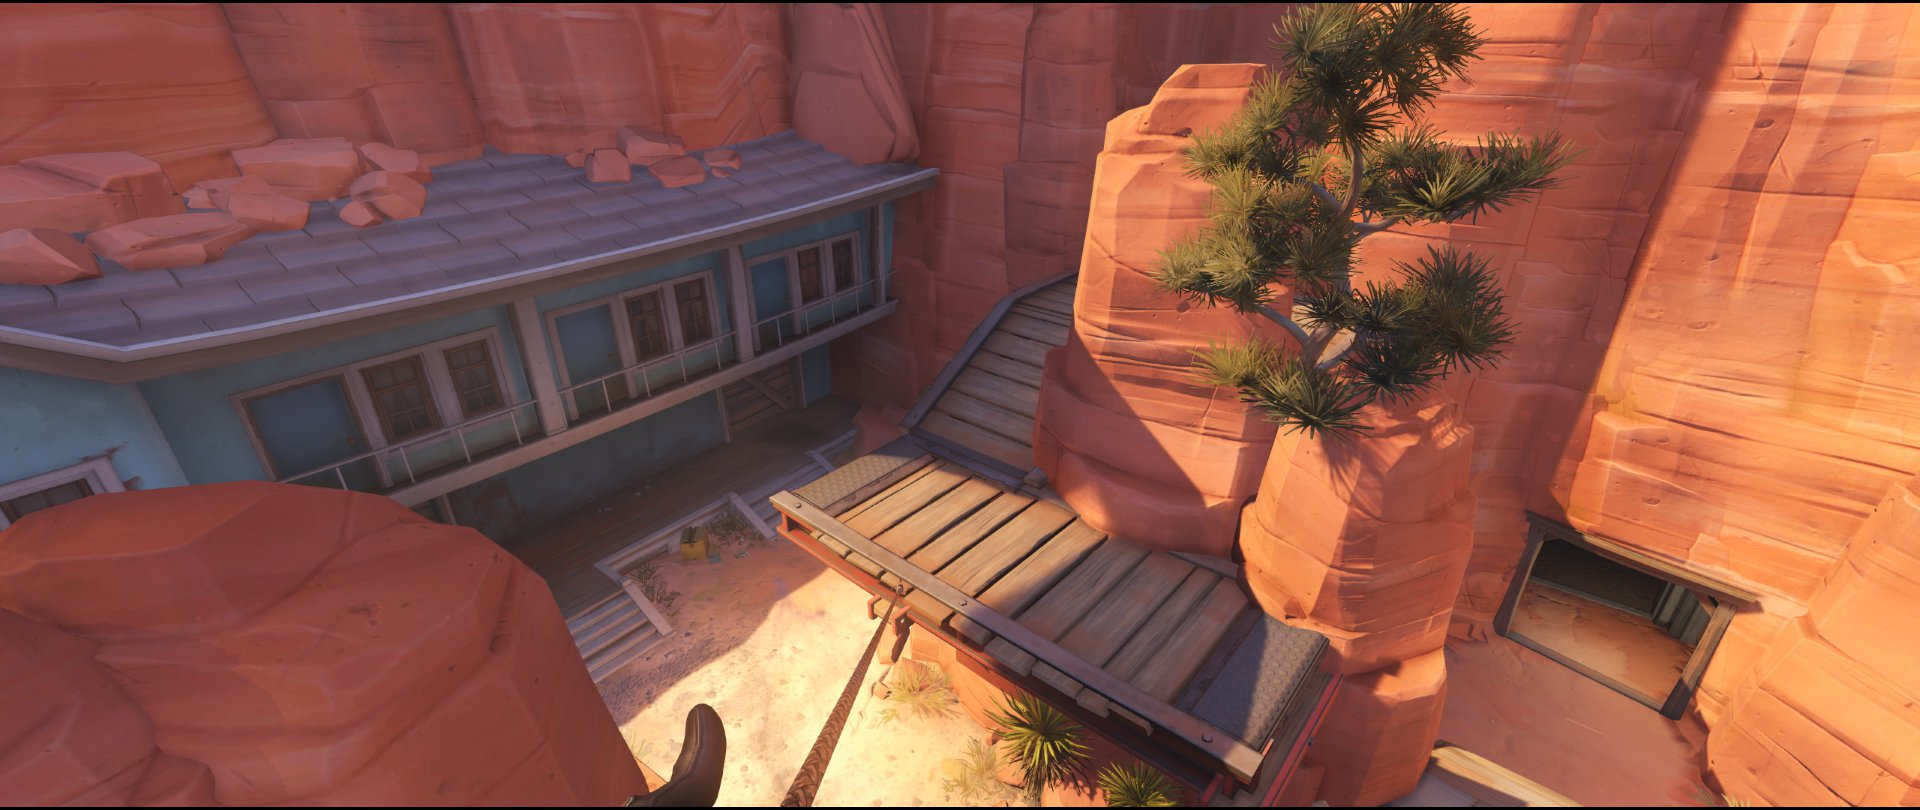 Pub to Perch attack sniping spot Widowmaker Route 66.jpg